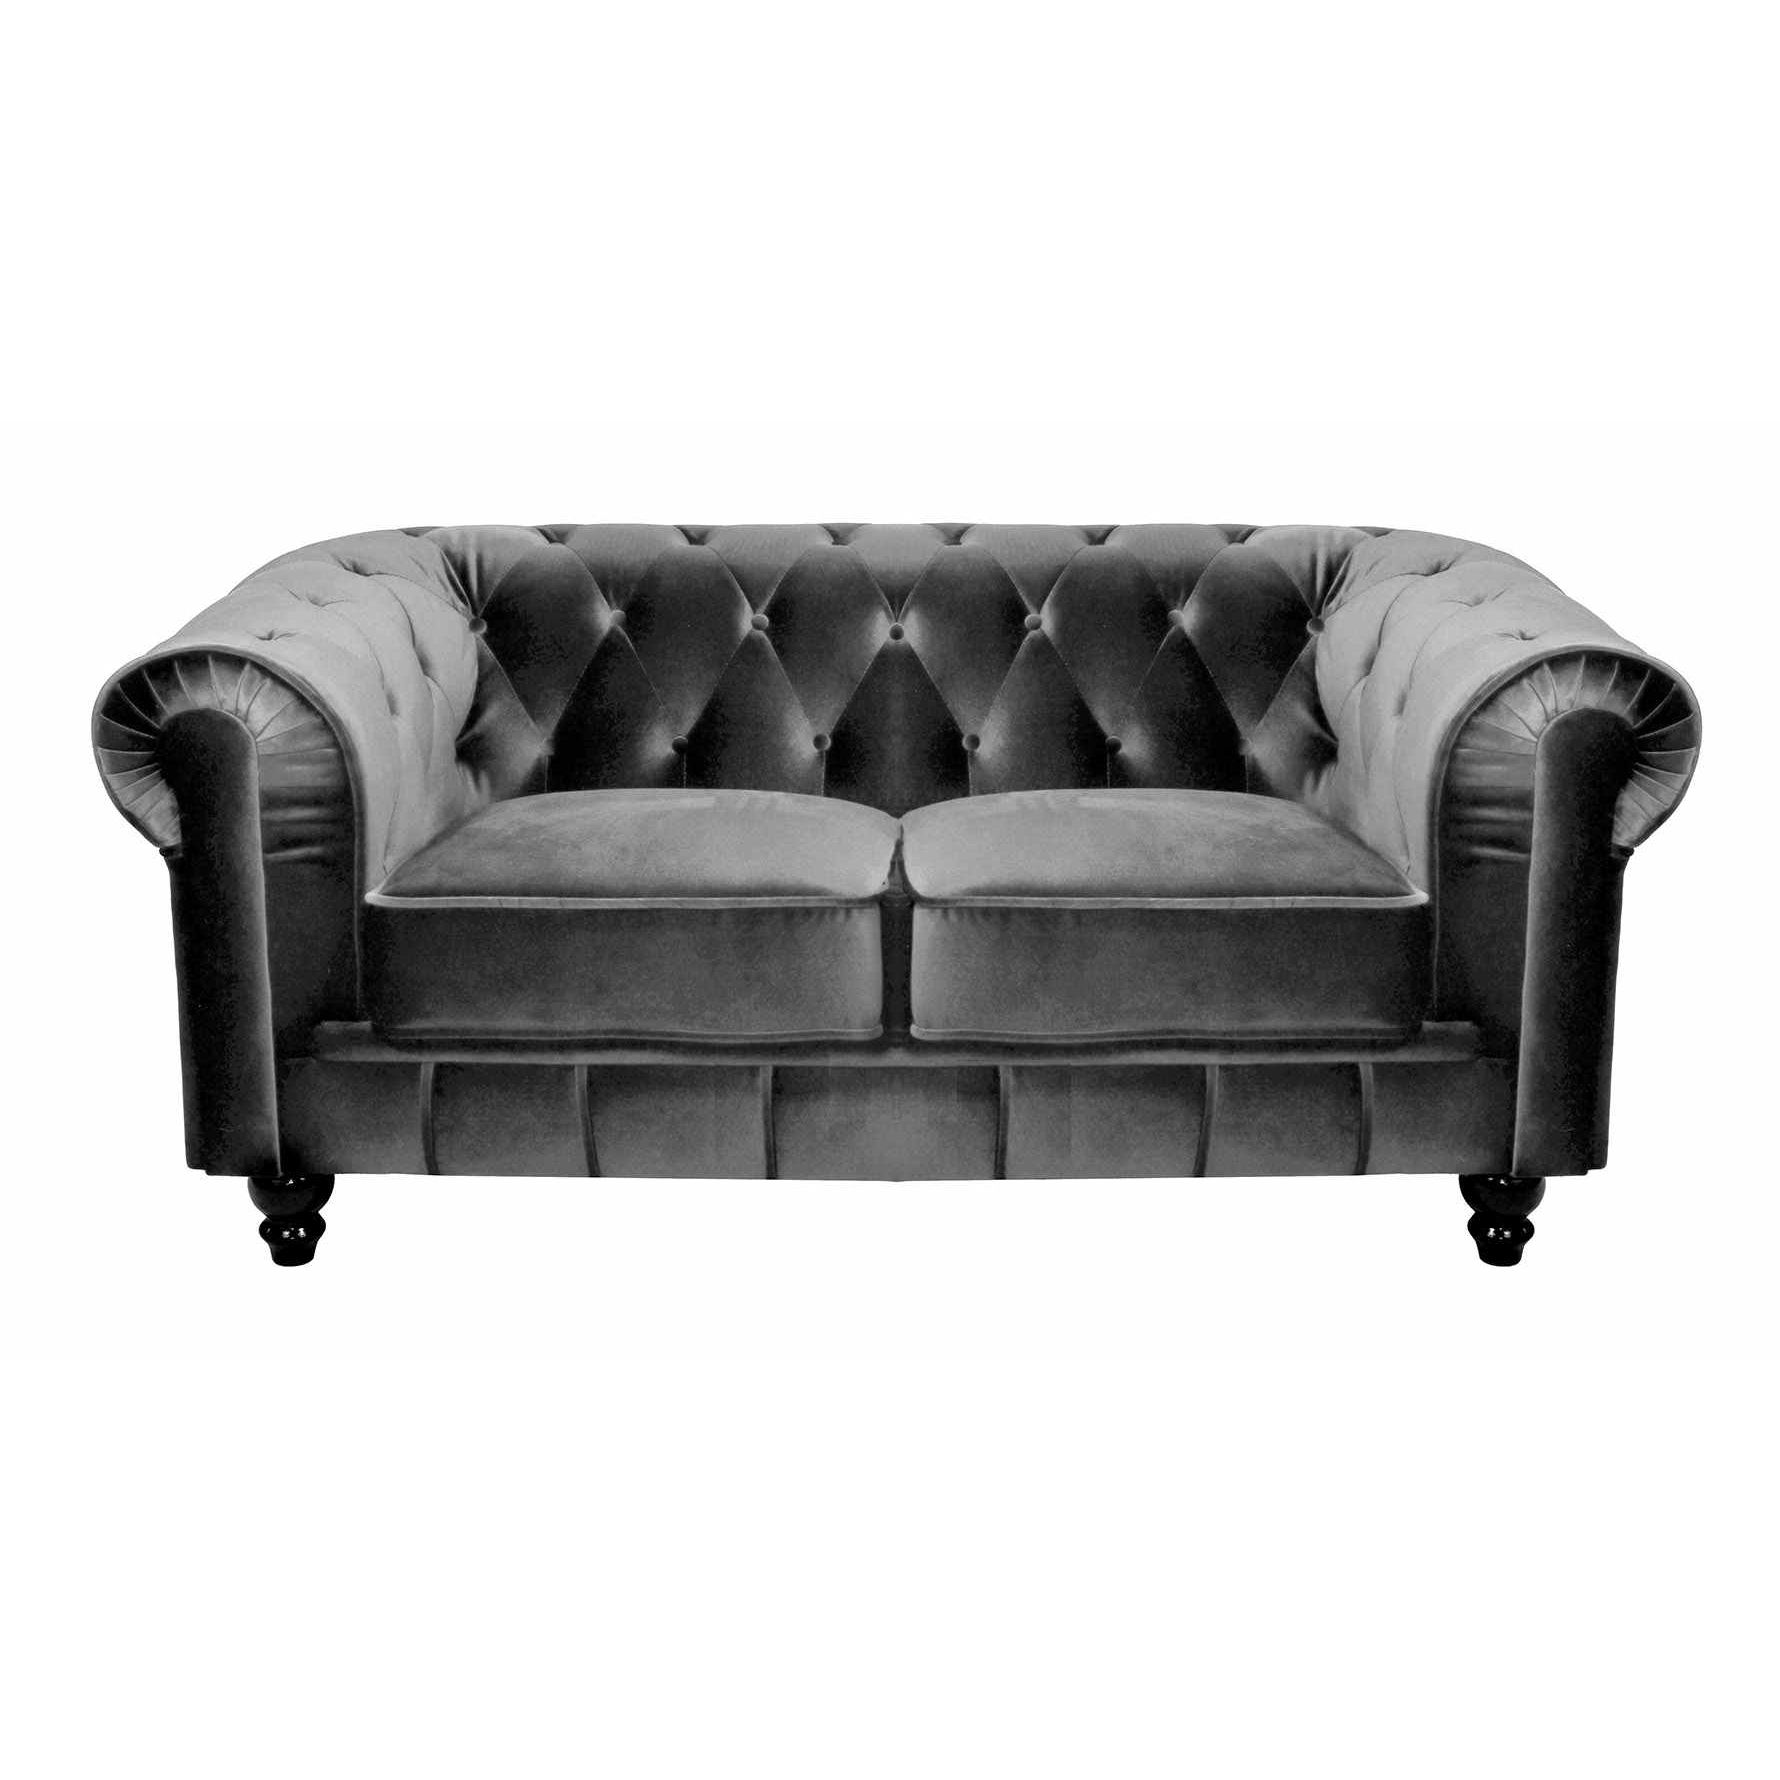 Deco in paris canape 2 places velours gris chesterfield for Canape 2 places gris